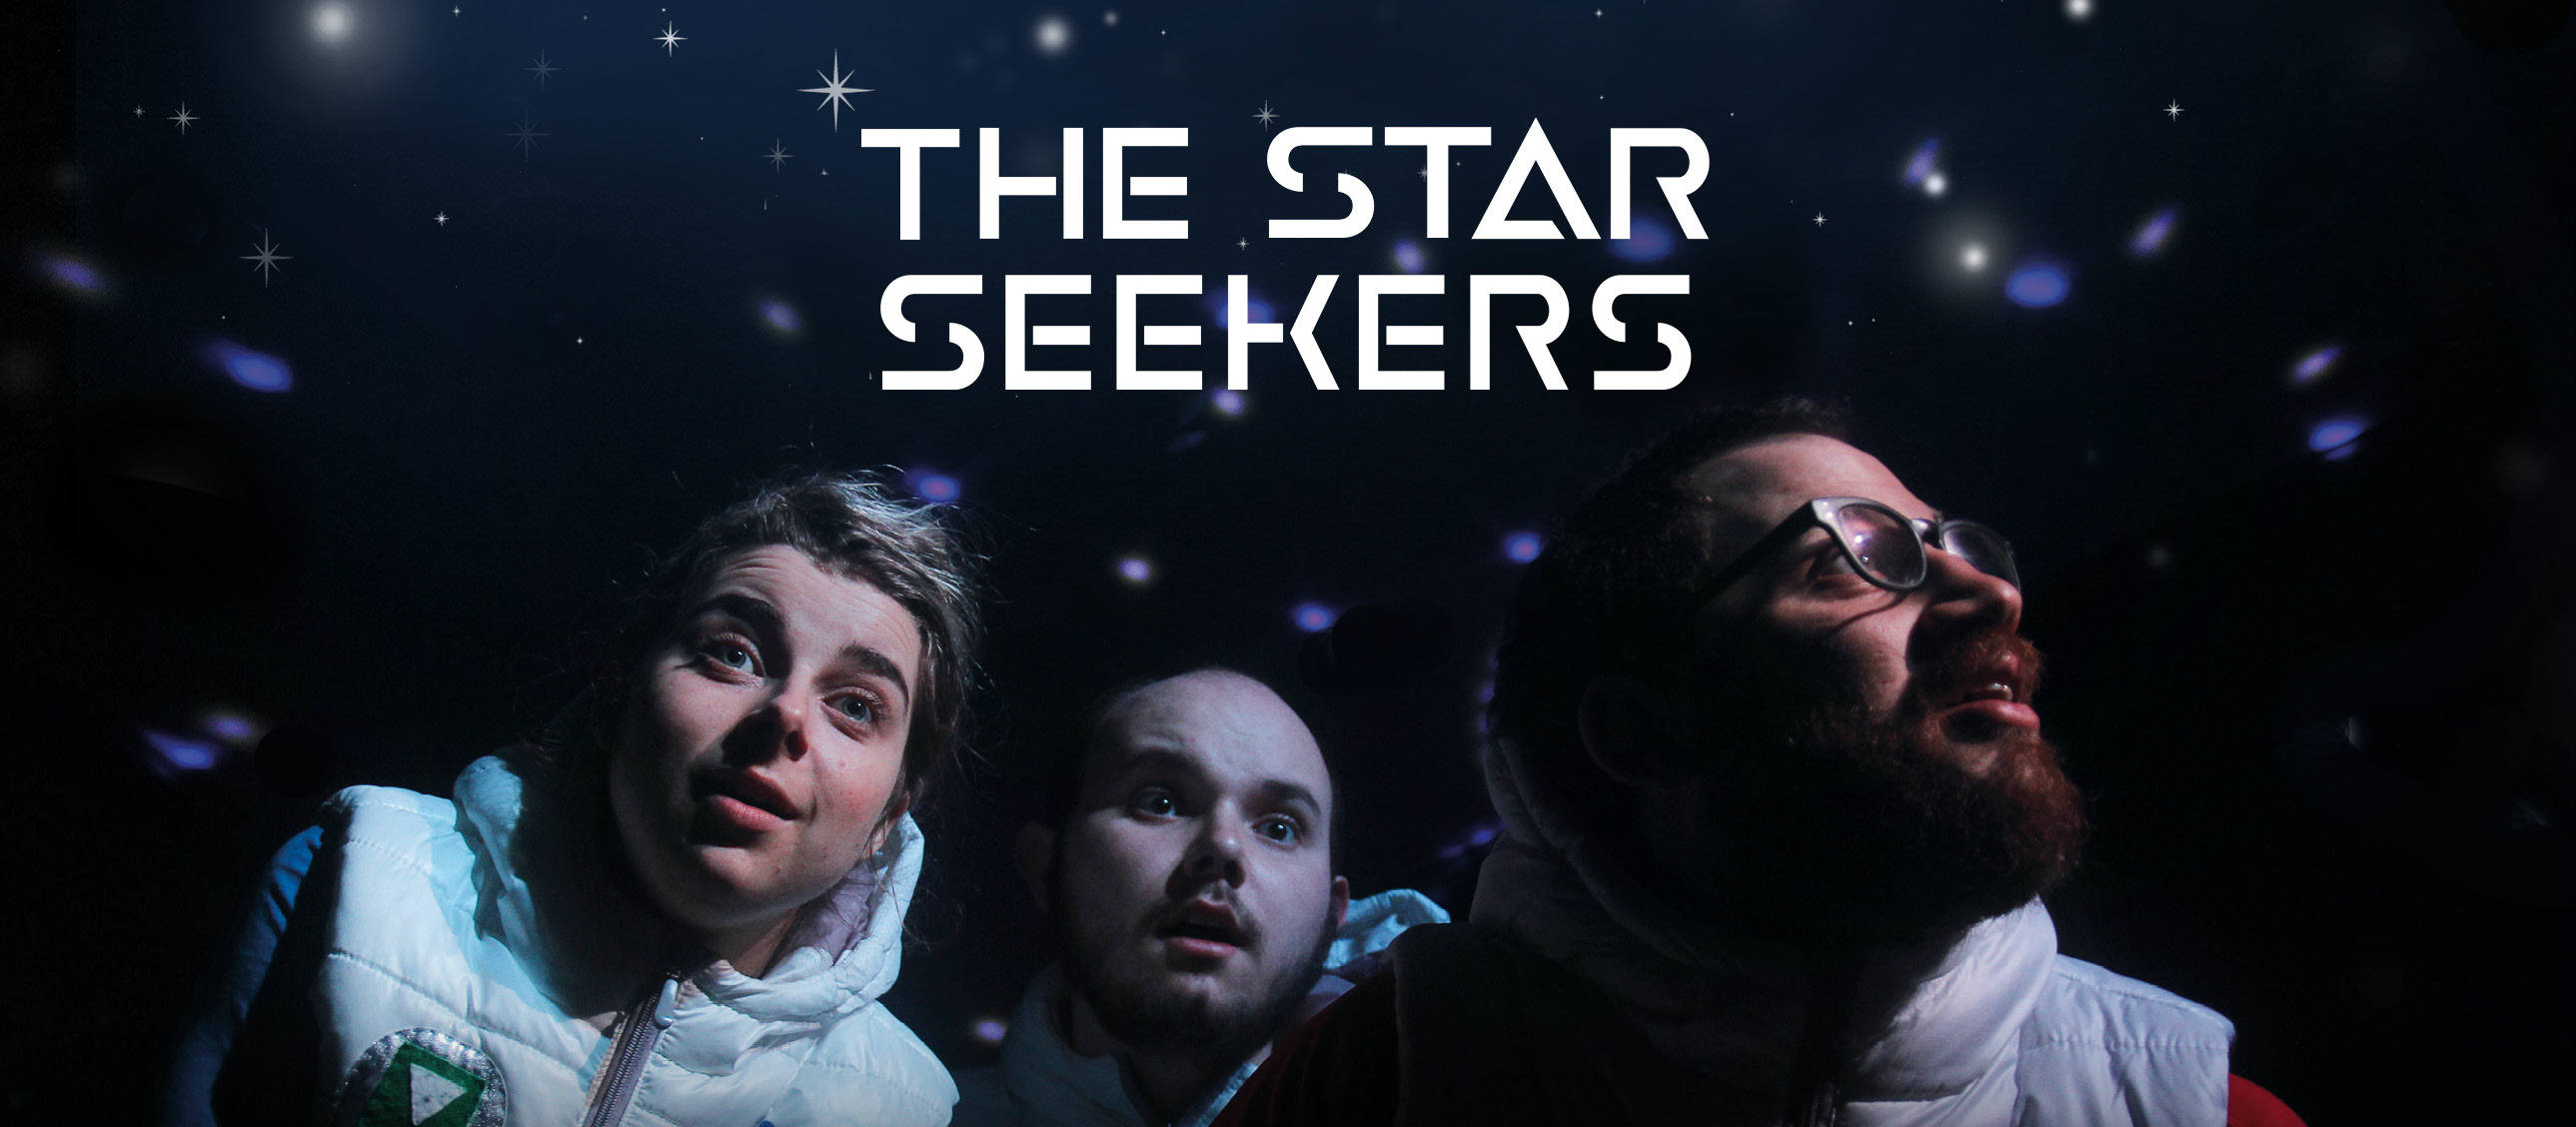 The Star Seekers - photo of the three Star Seekers, Alph, Betty and Gammo